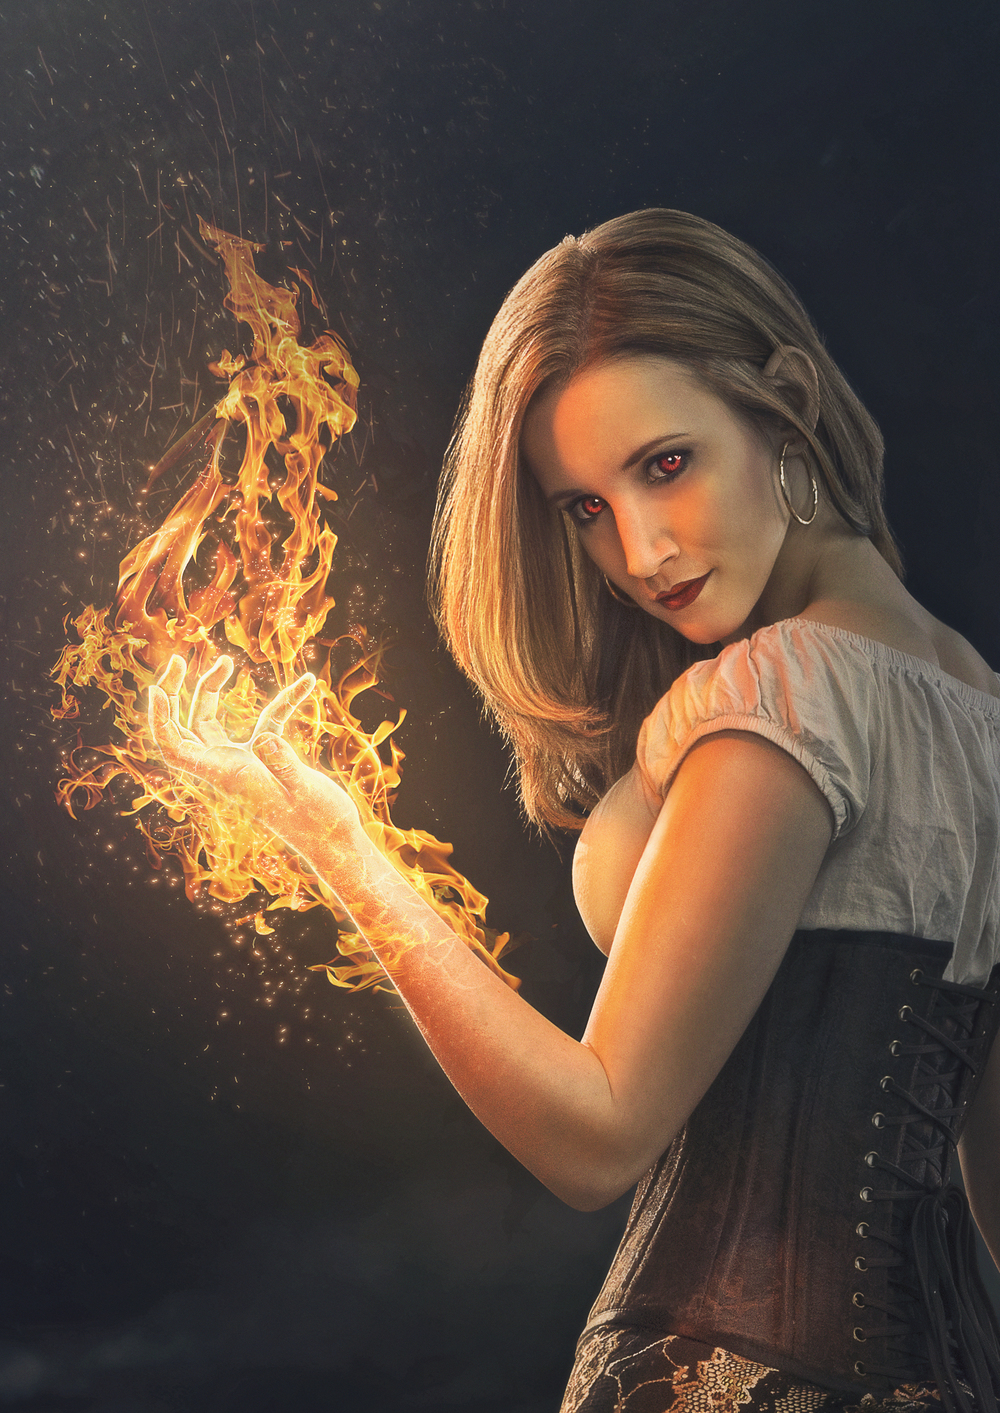 5 Tips For Adding Fire With Photoshop — Robert Cornelius for Girl With Fire In Hands  174mzq